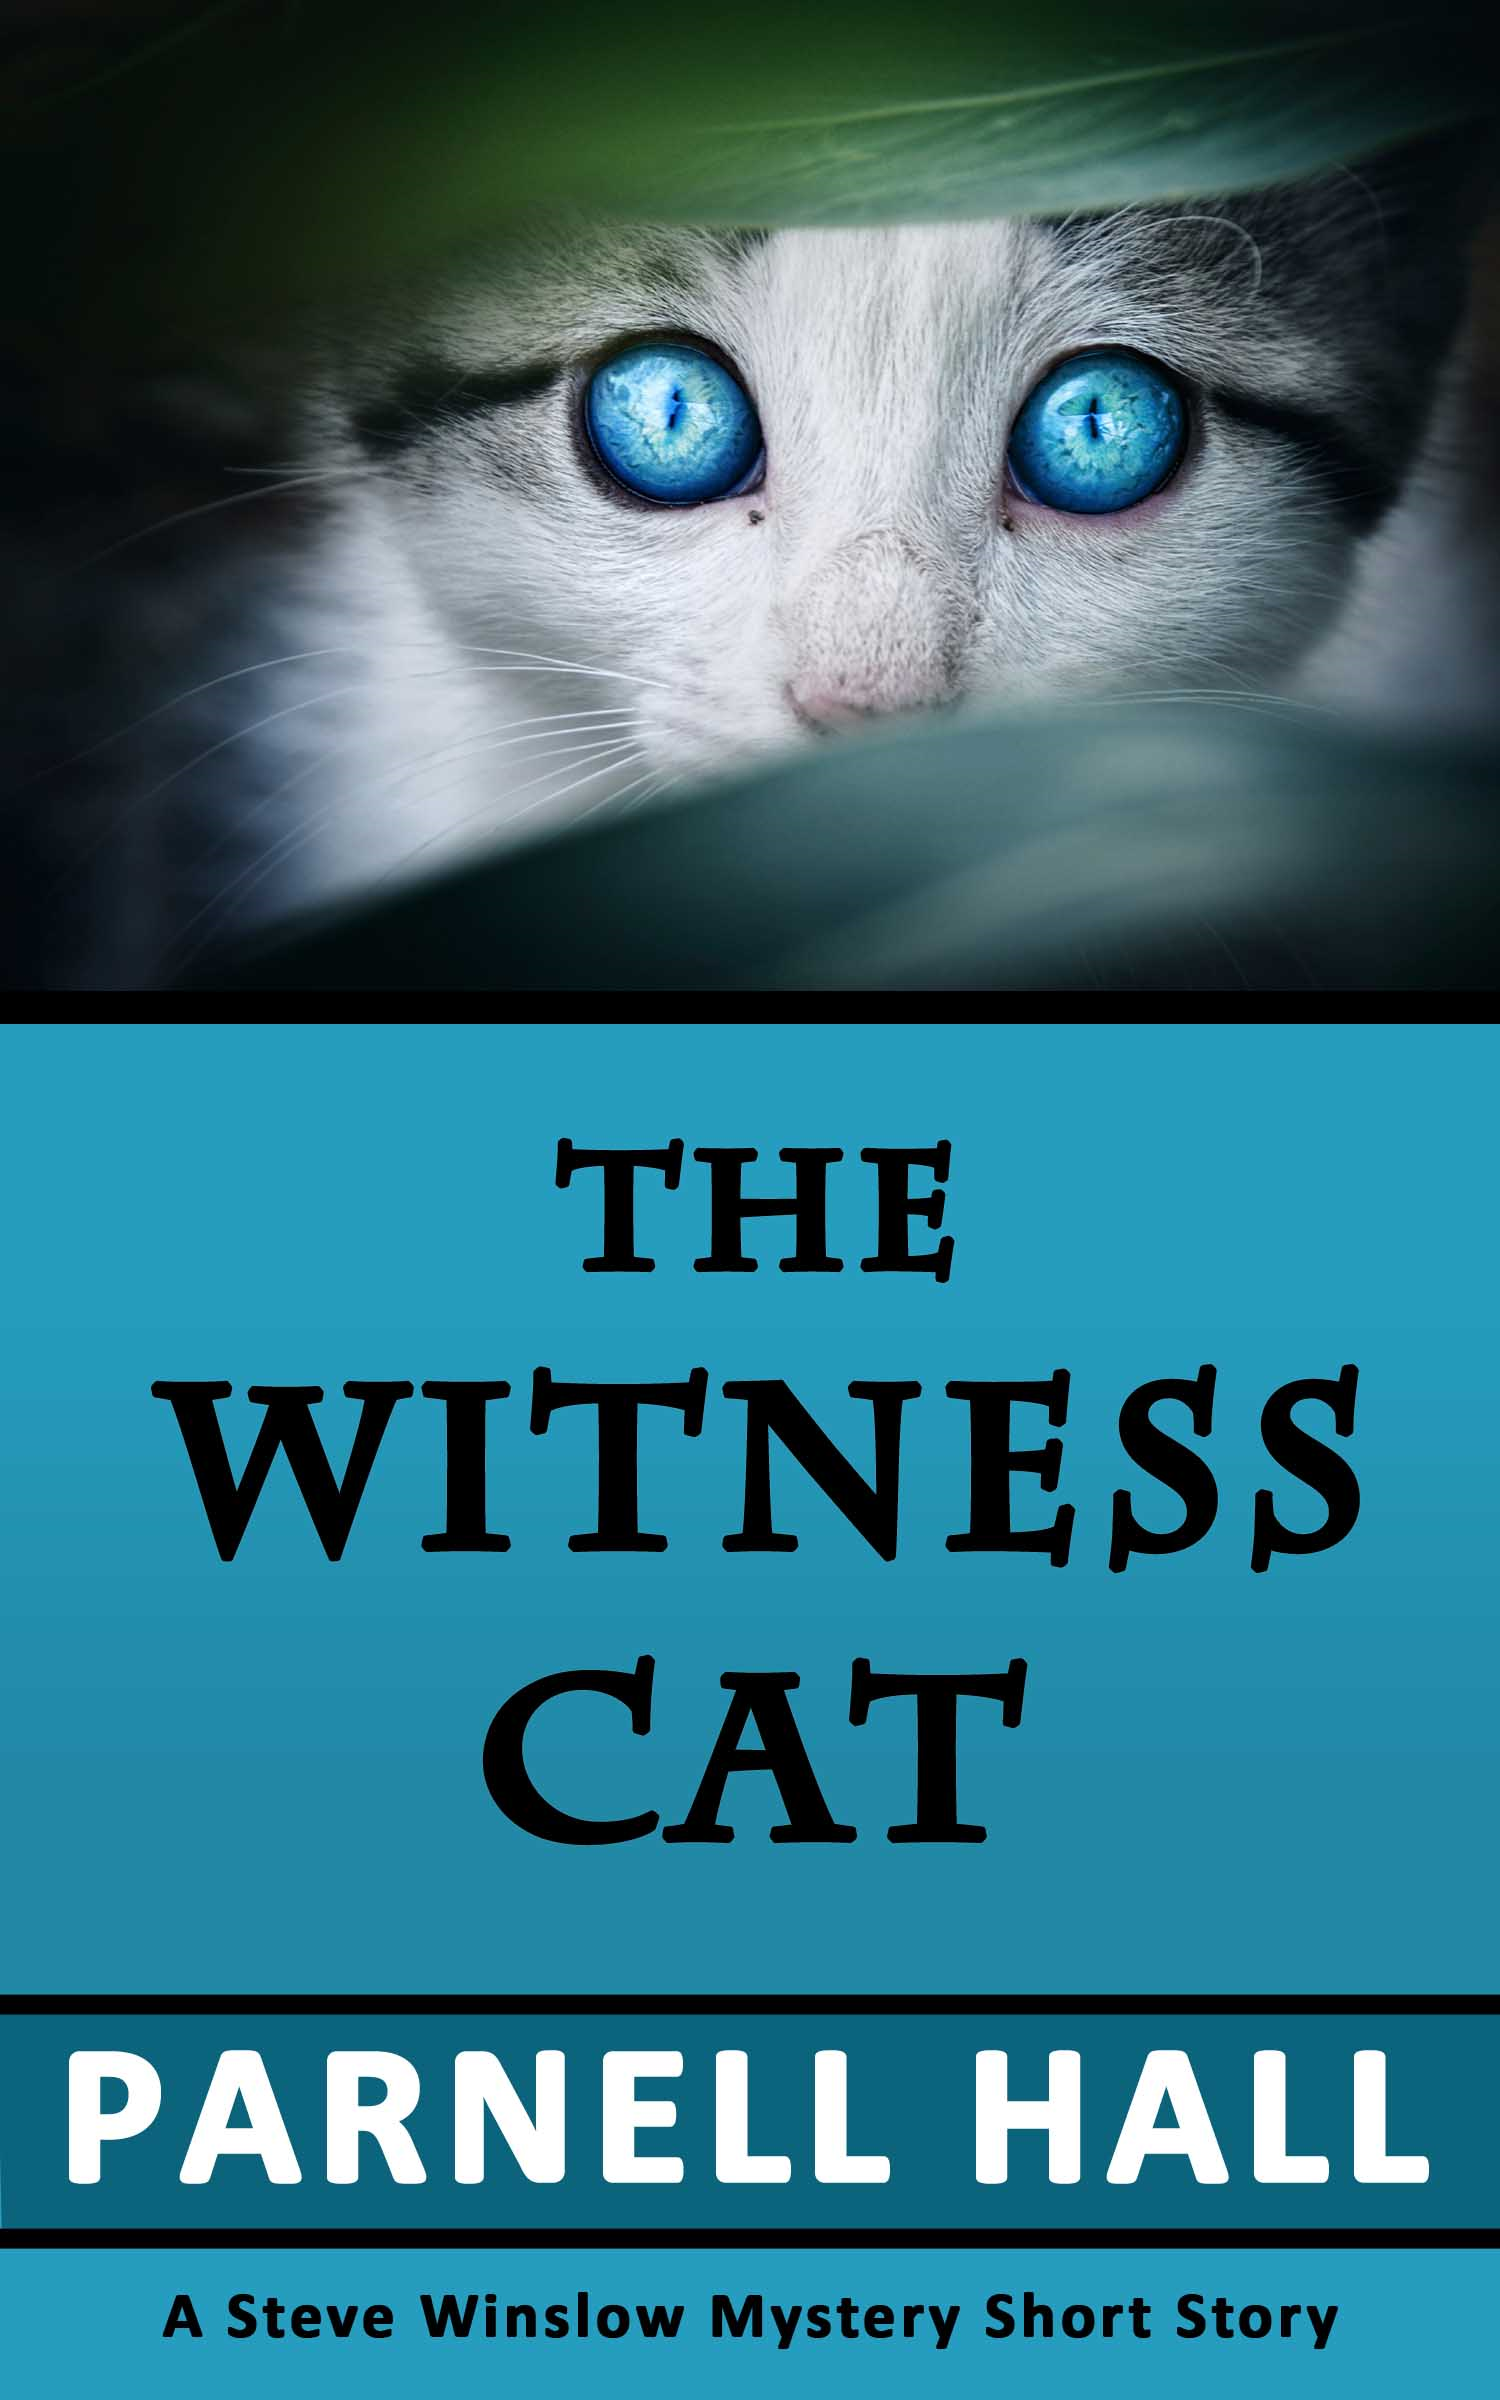 The Witness Cat